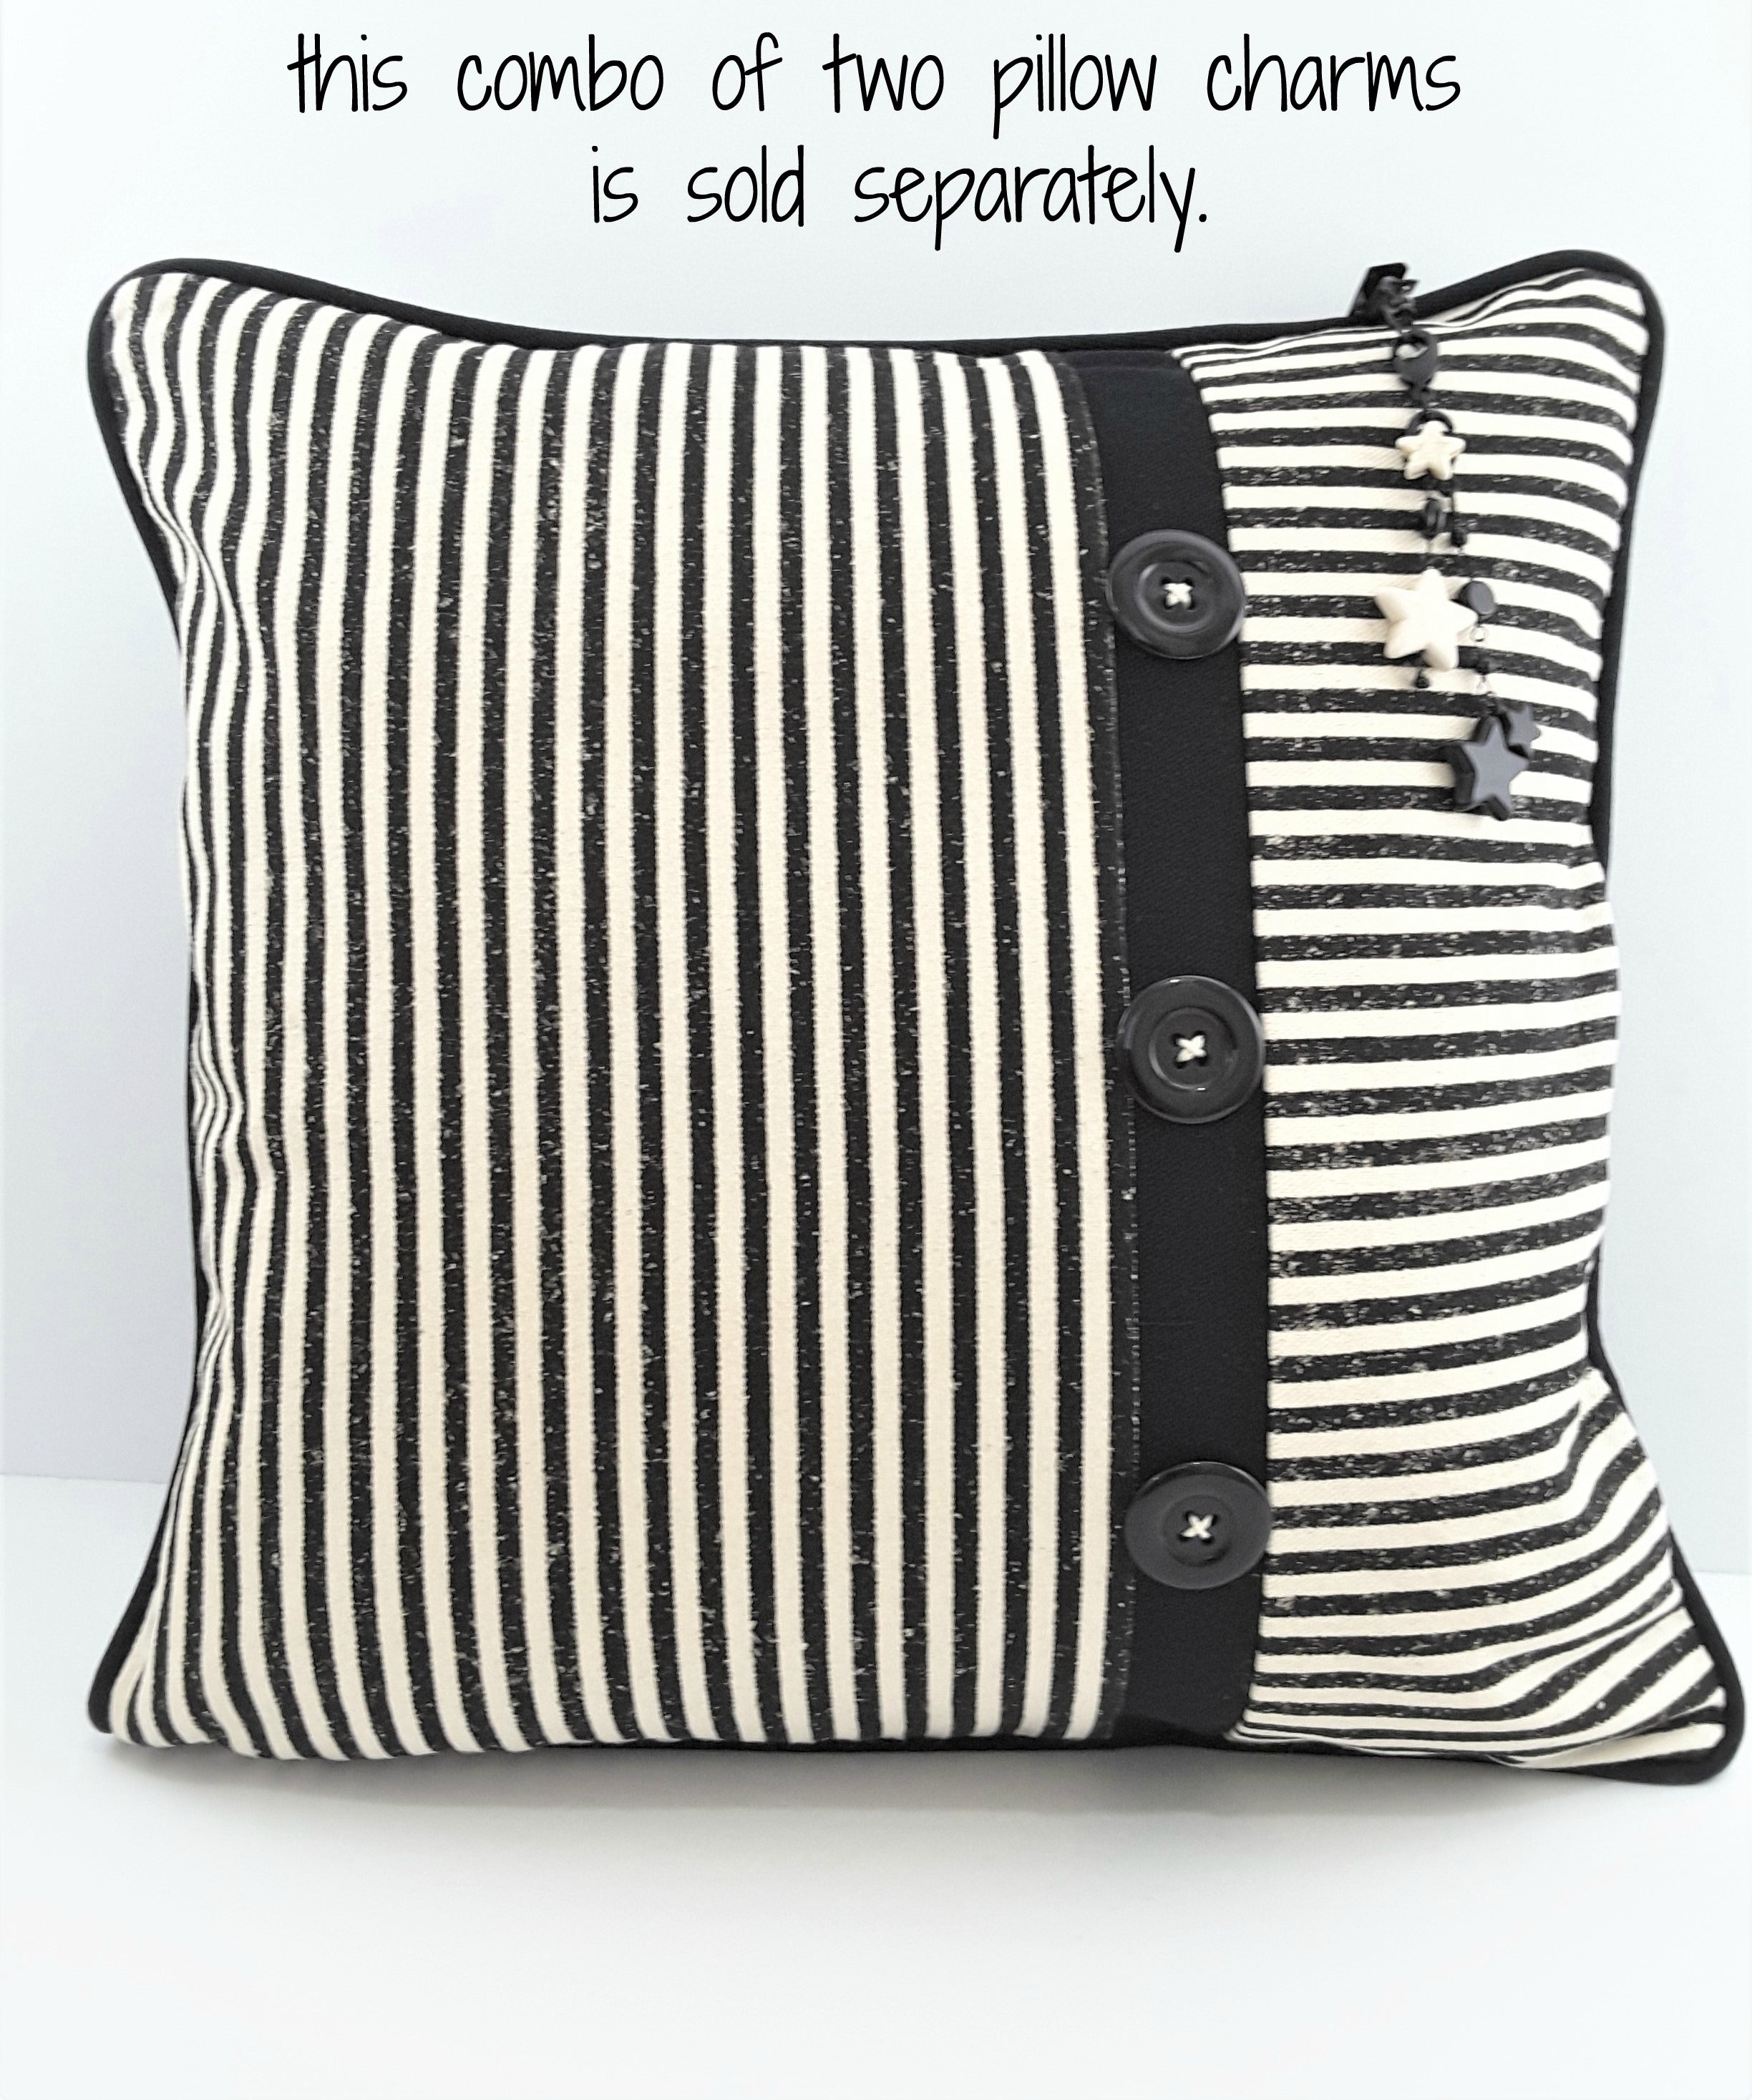 TWO PILLOW CHARMS HANGING FROM STRIPE, 3 BUTTON PILLOW